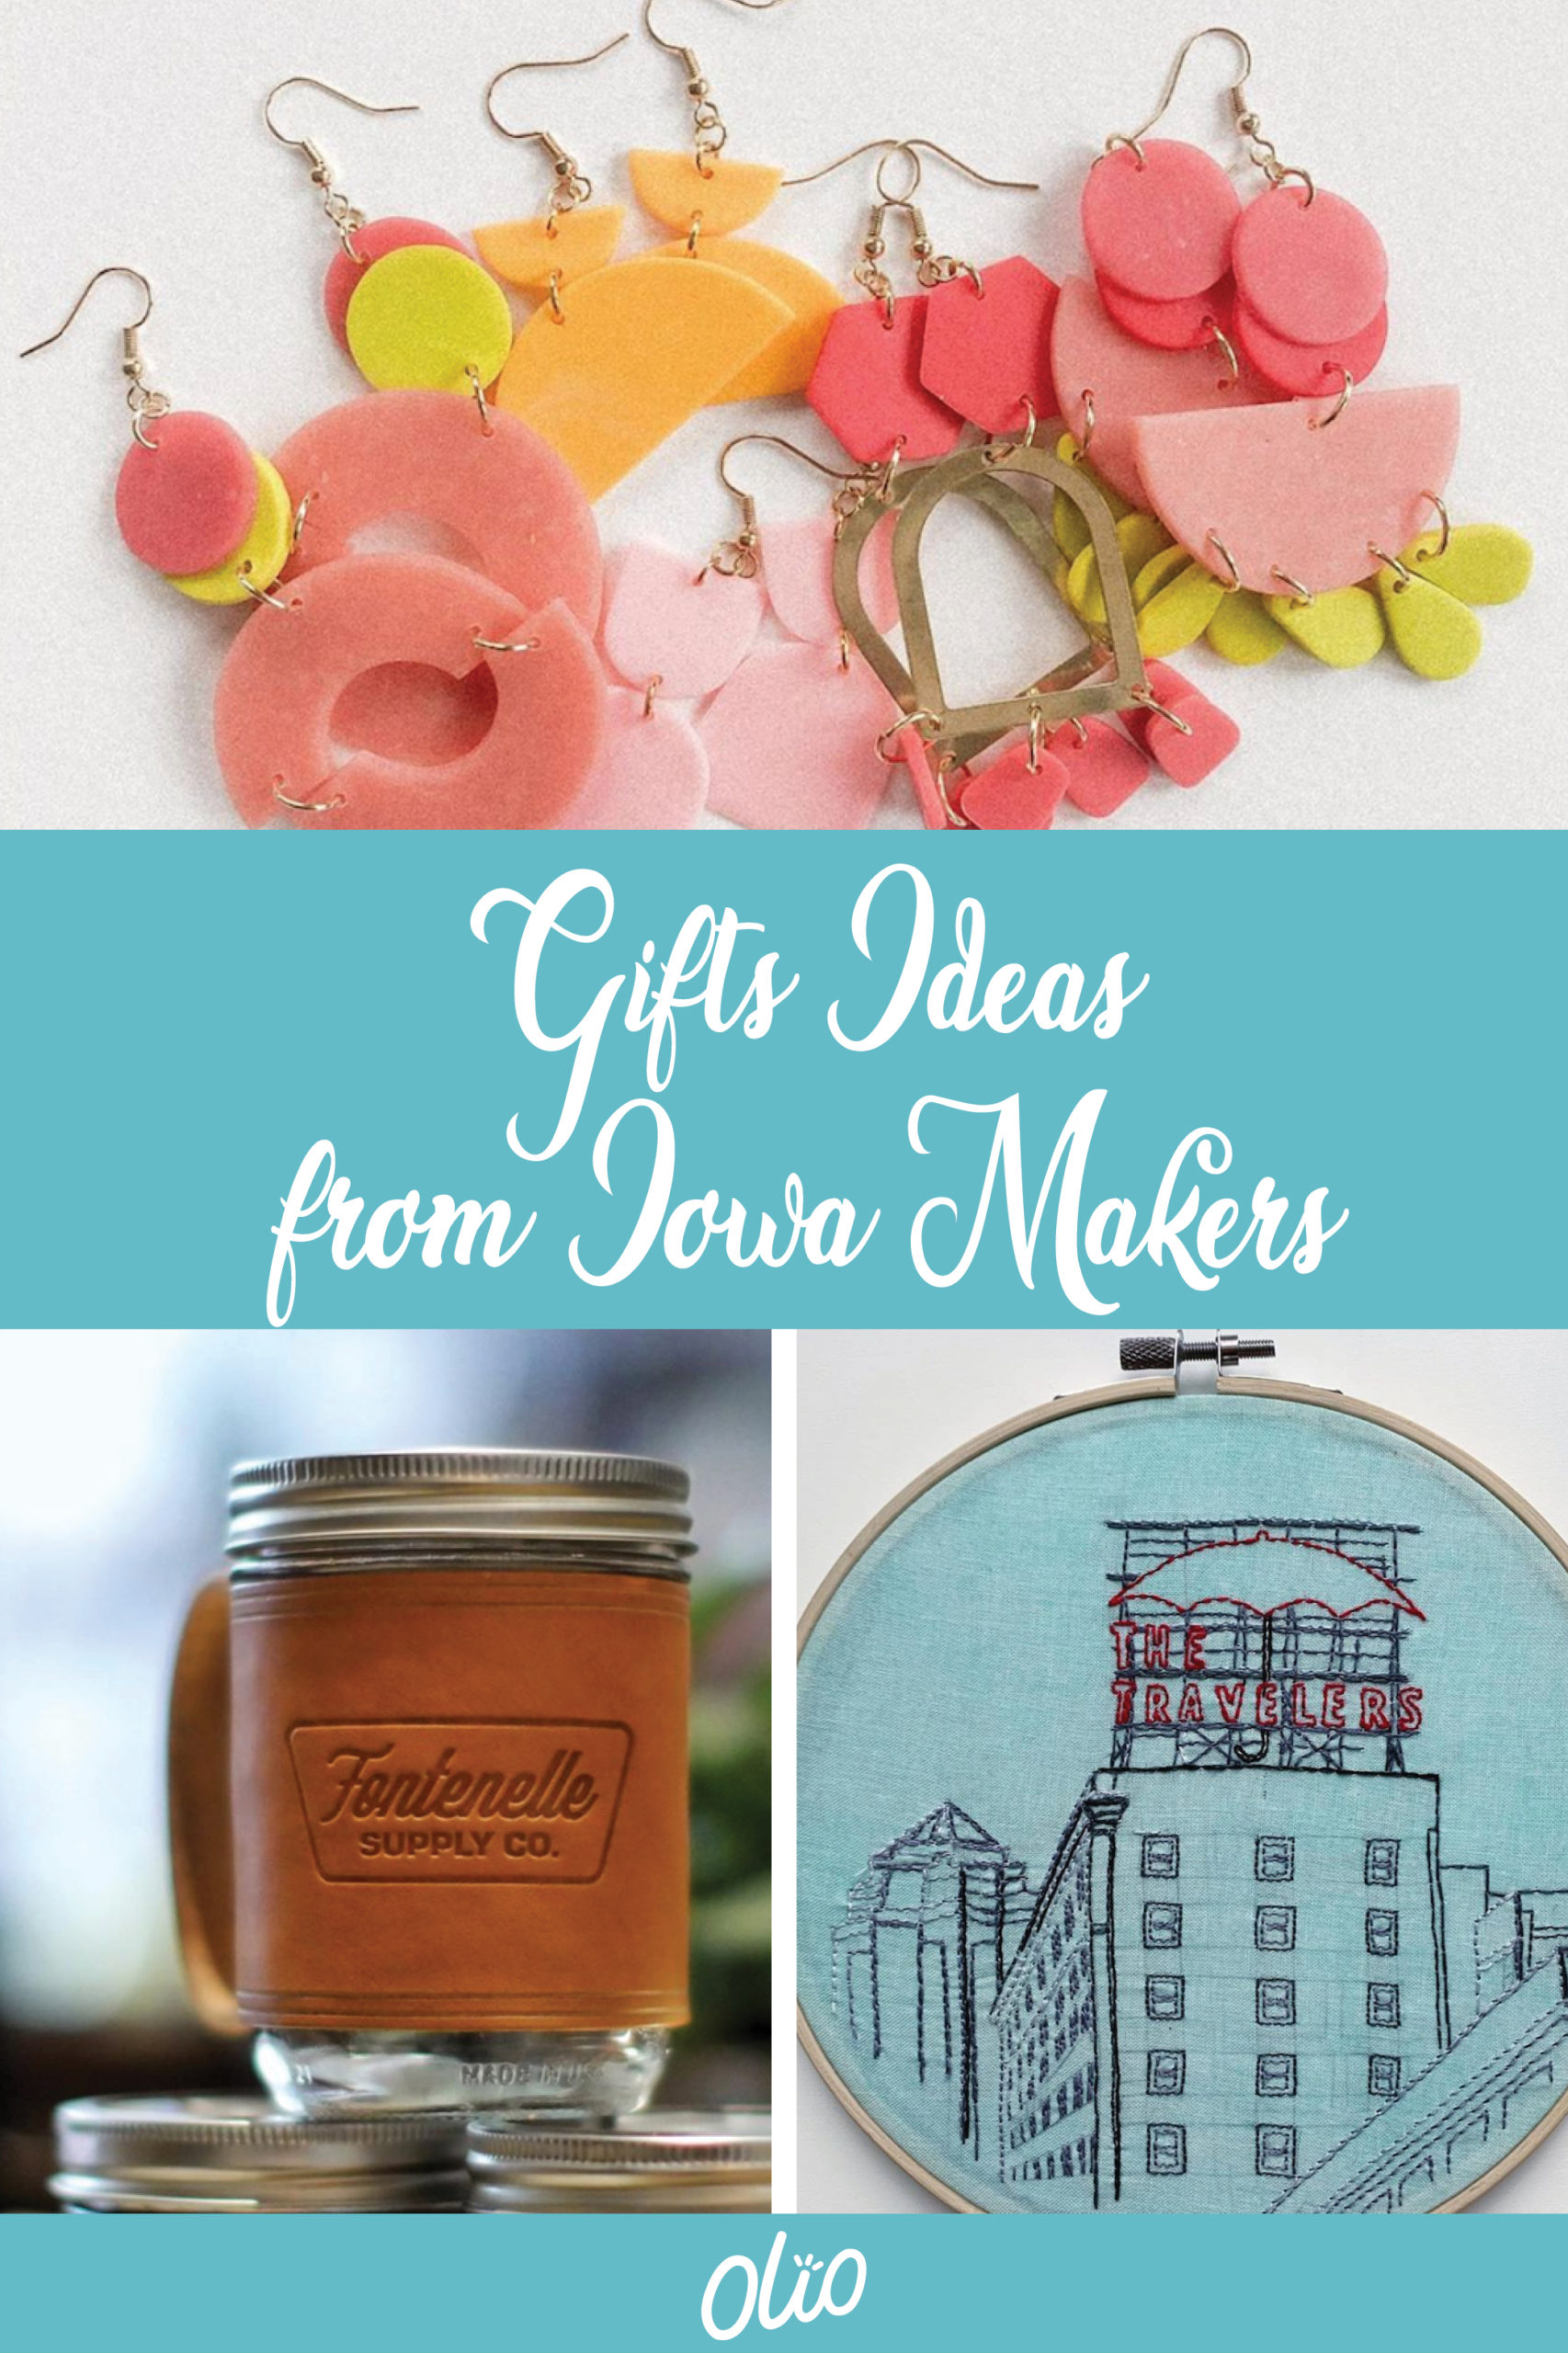 Looking for a way to support Iowa small businesses? Consider shopping local when buying gifts for Mother's Day, Father's Day, birthdays, graduations and more. Discover Iowa-made products that are perfect for everyone in your life! #Iowa #TravelIowa #MadeInIowa #IowansUnite